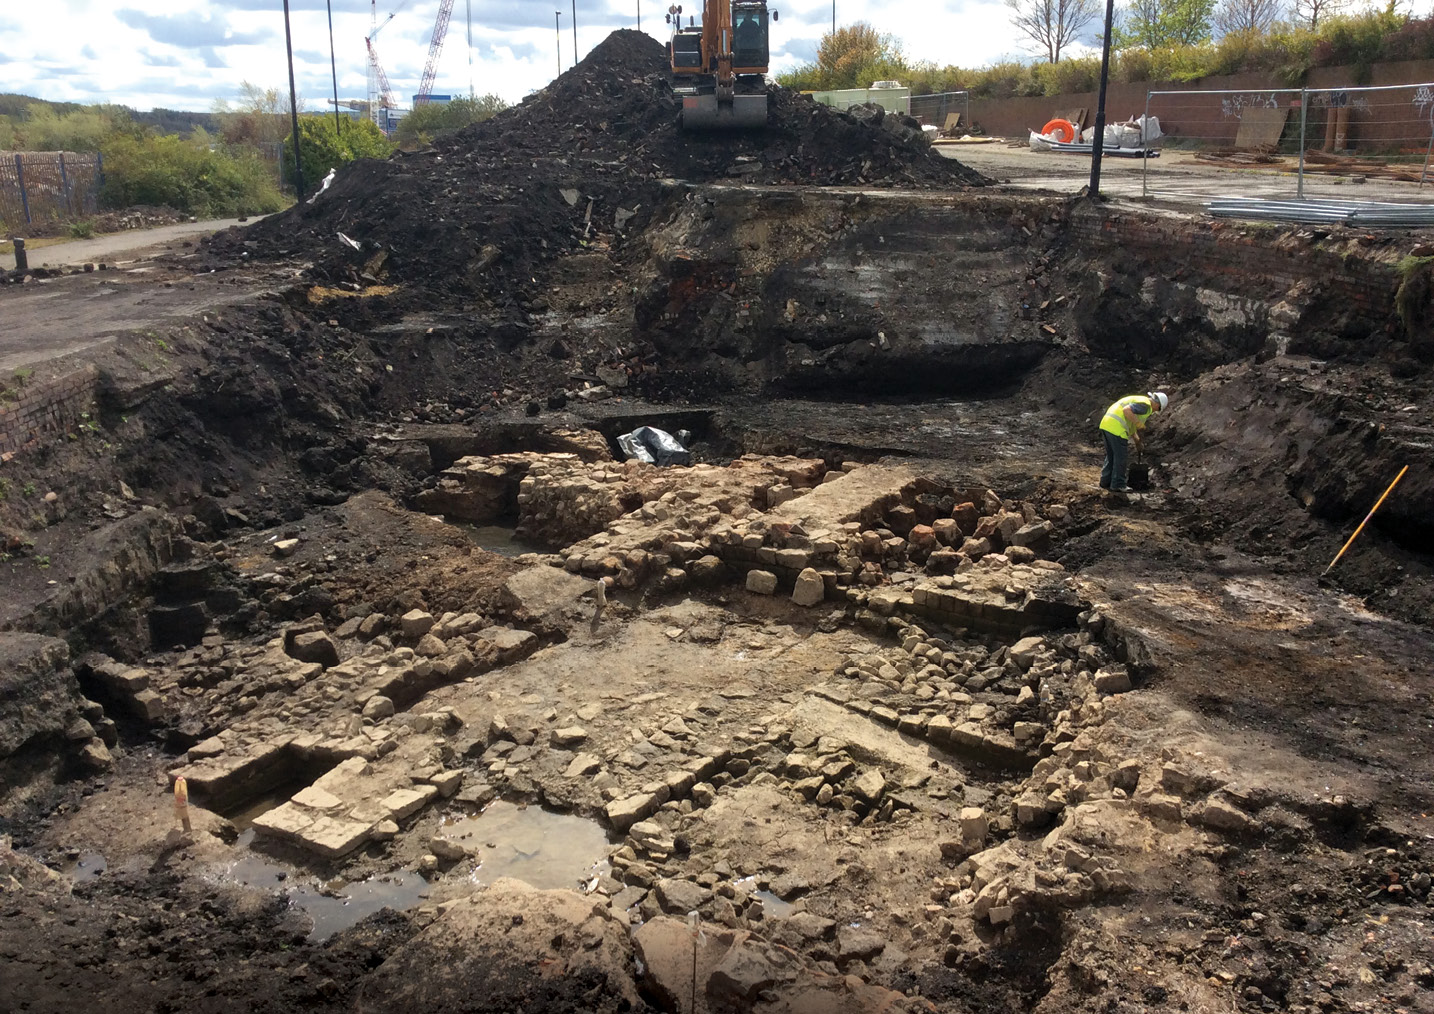 above The Roman baths at Wallsend, revealed in 2014-2015.